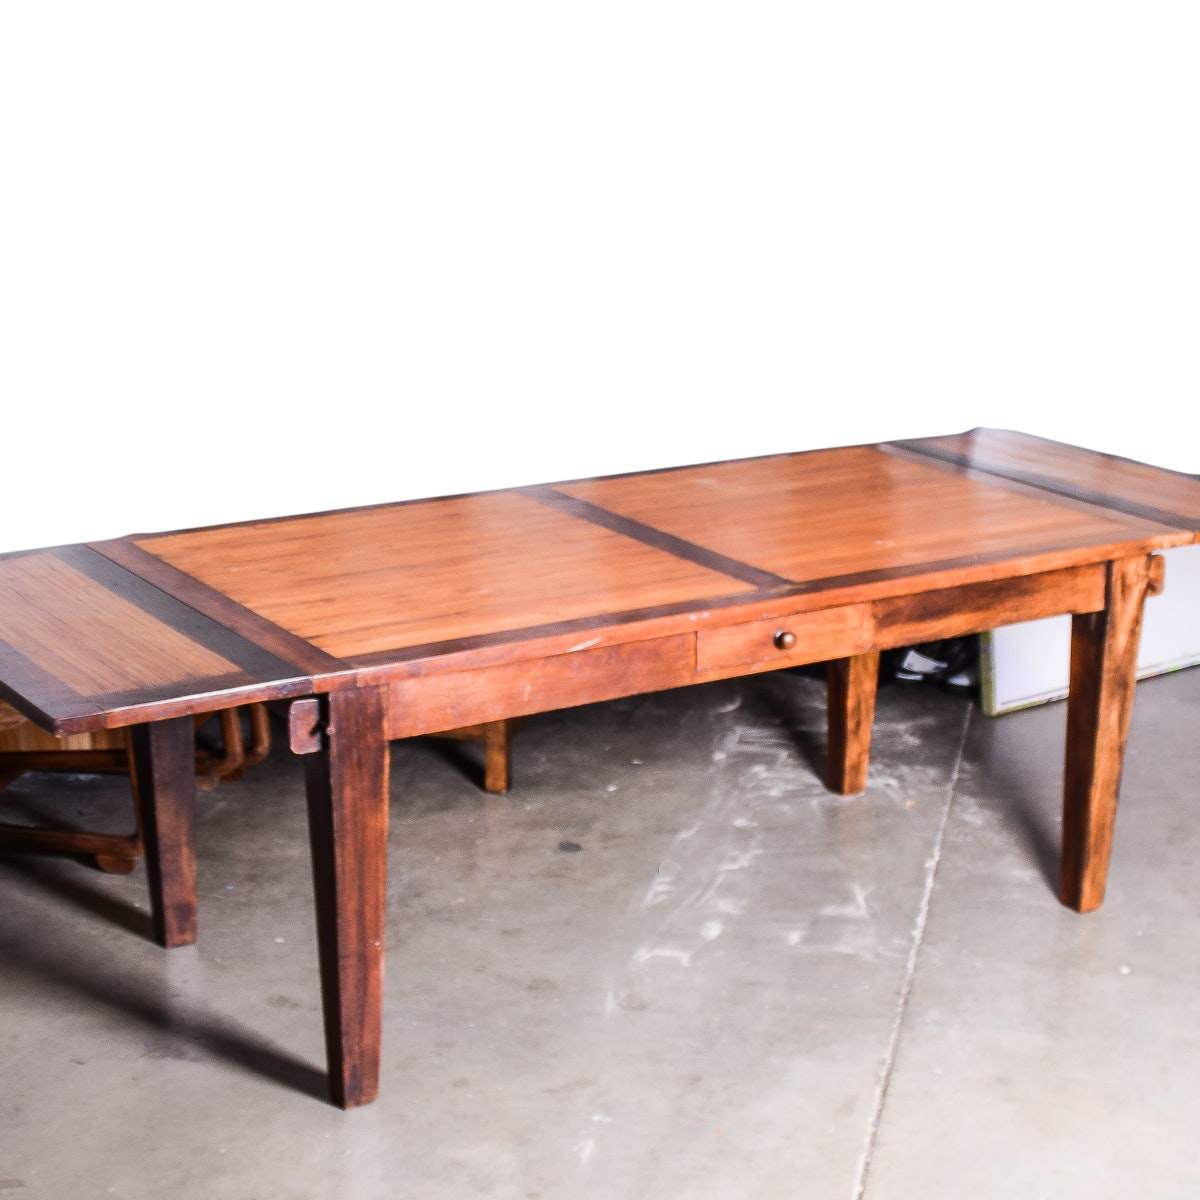 Dining Room Tables With Leaves: Dining Room Table With Two Extension Leaves : EBTH